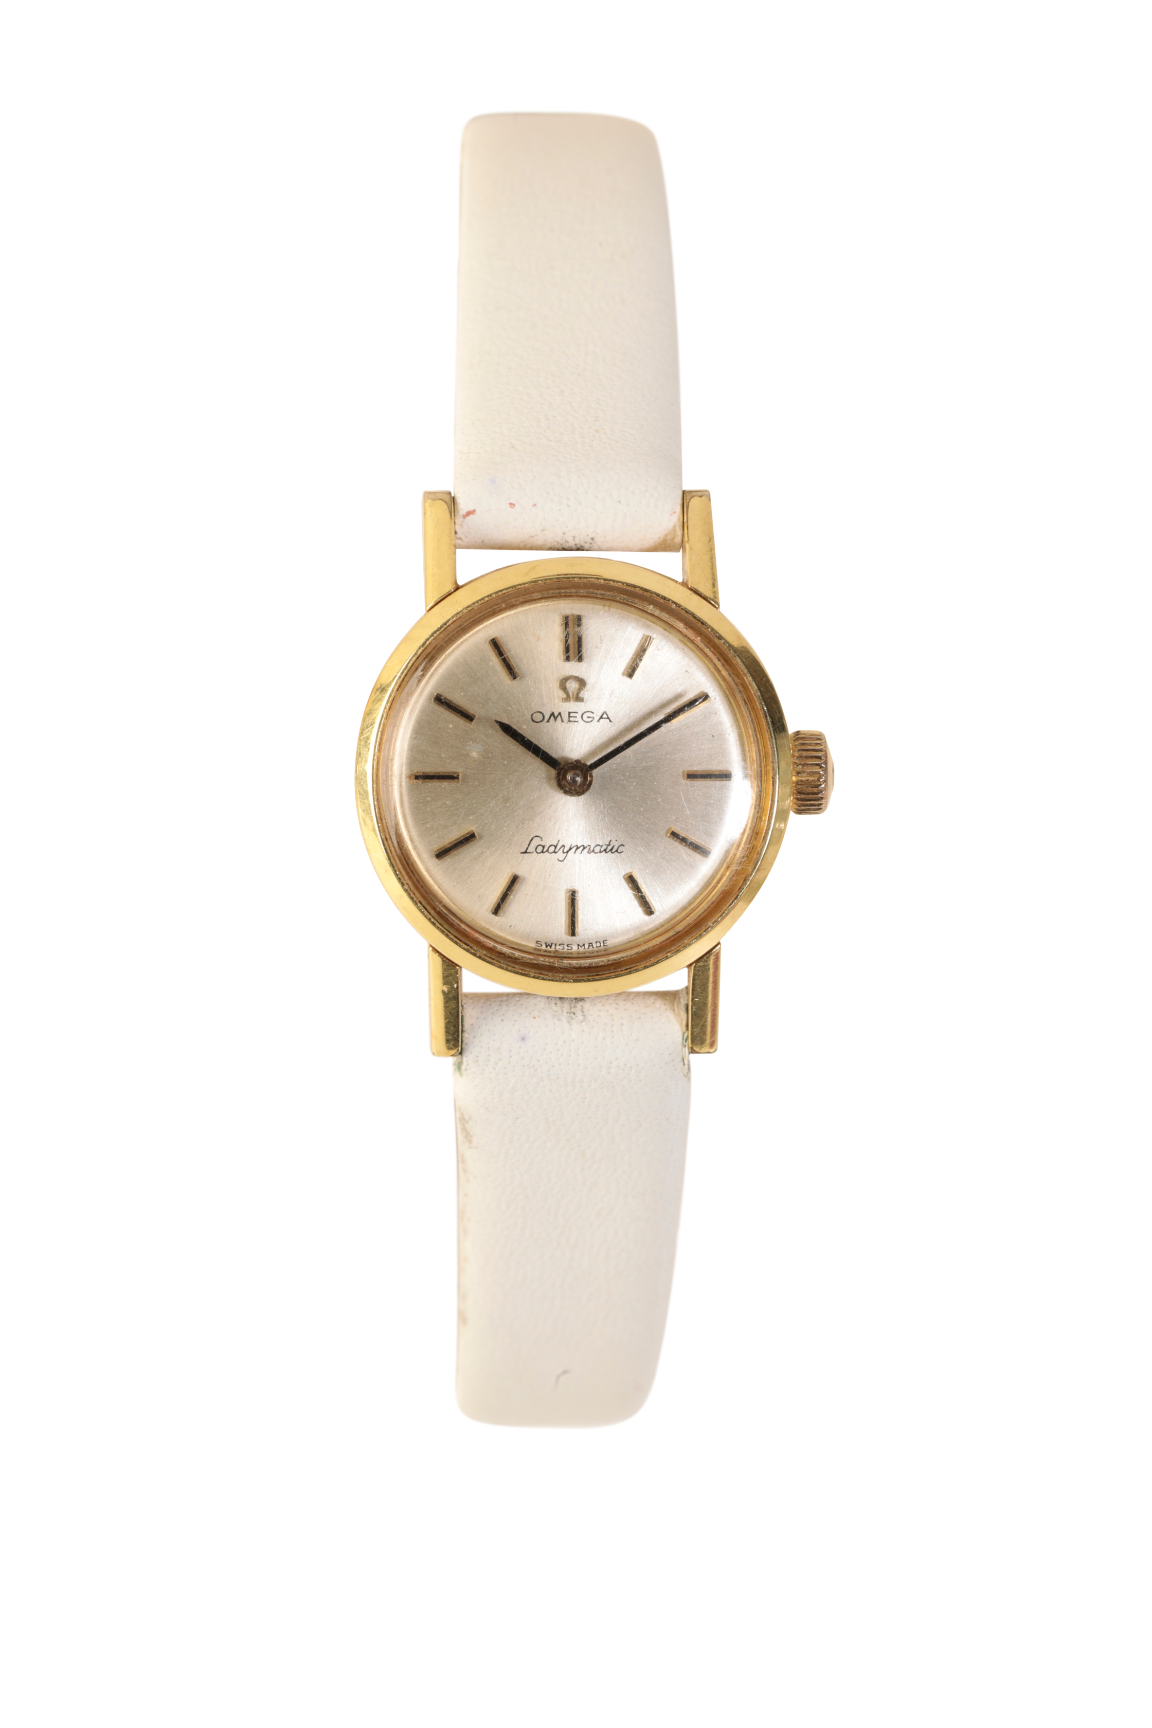 OMEGA LADY'S GOLD PLATED WRIST WATCH - Image 3 of 3